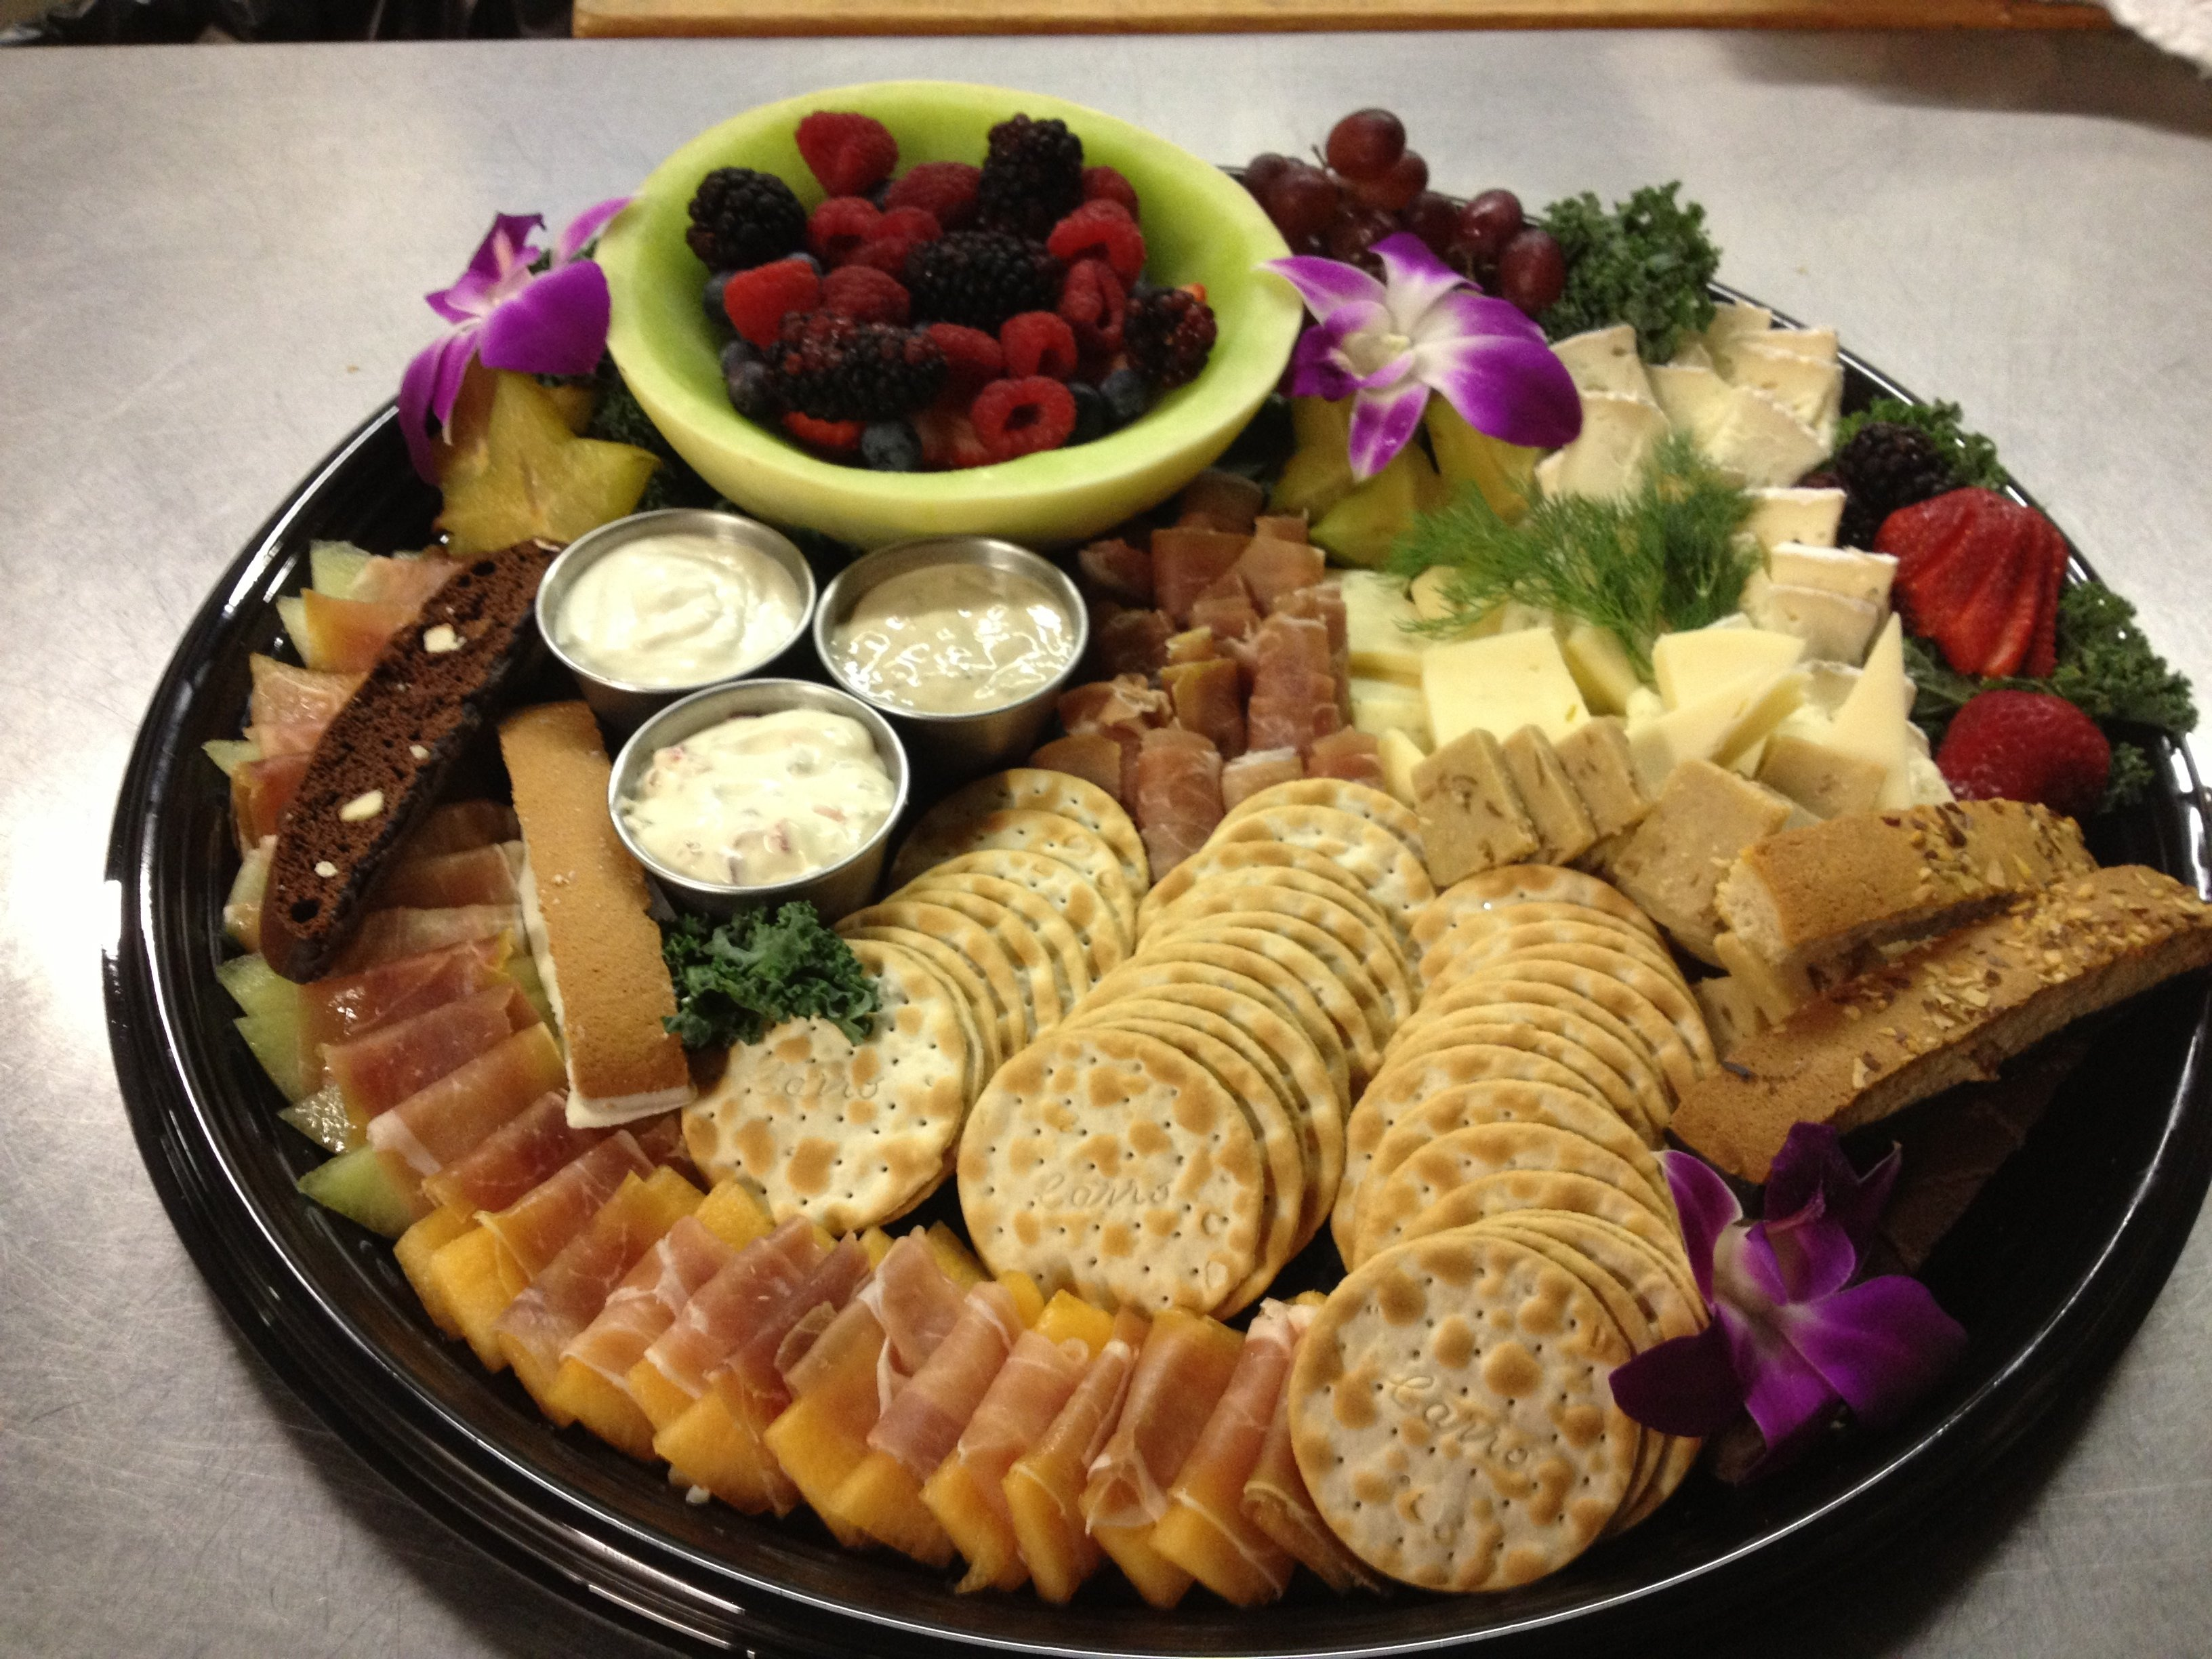 10 Fantastic Cheese And Cracker Tray Ideas decor best 25 cheese trays ideas on pinterest thanksgiving fruit